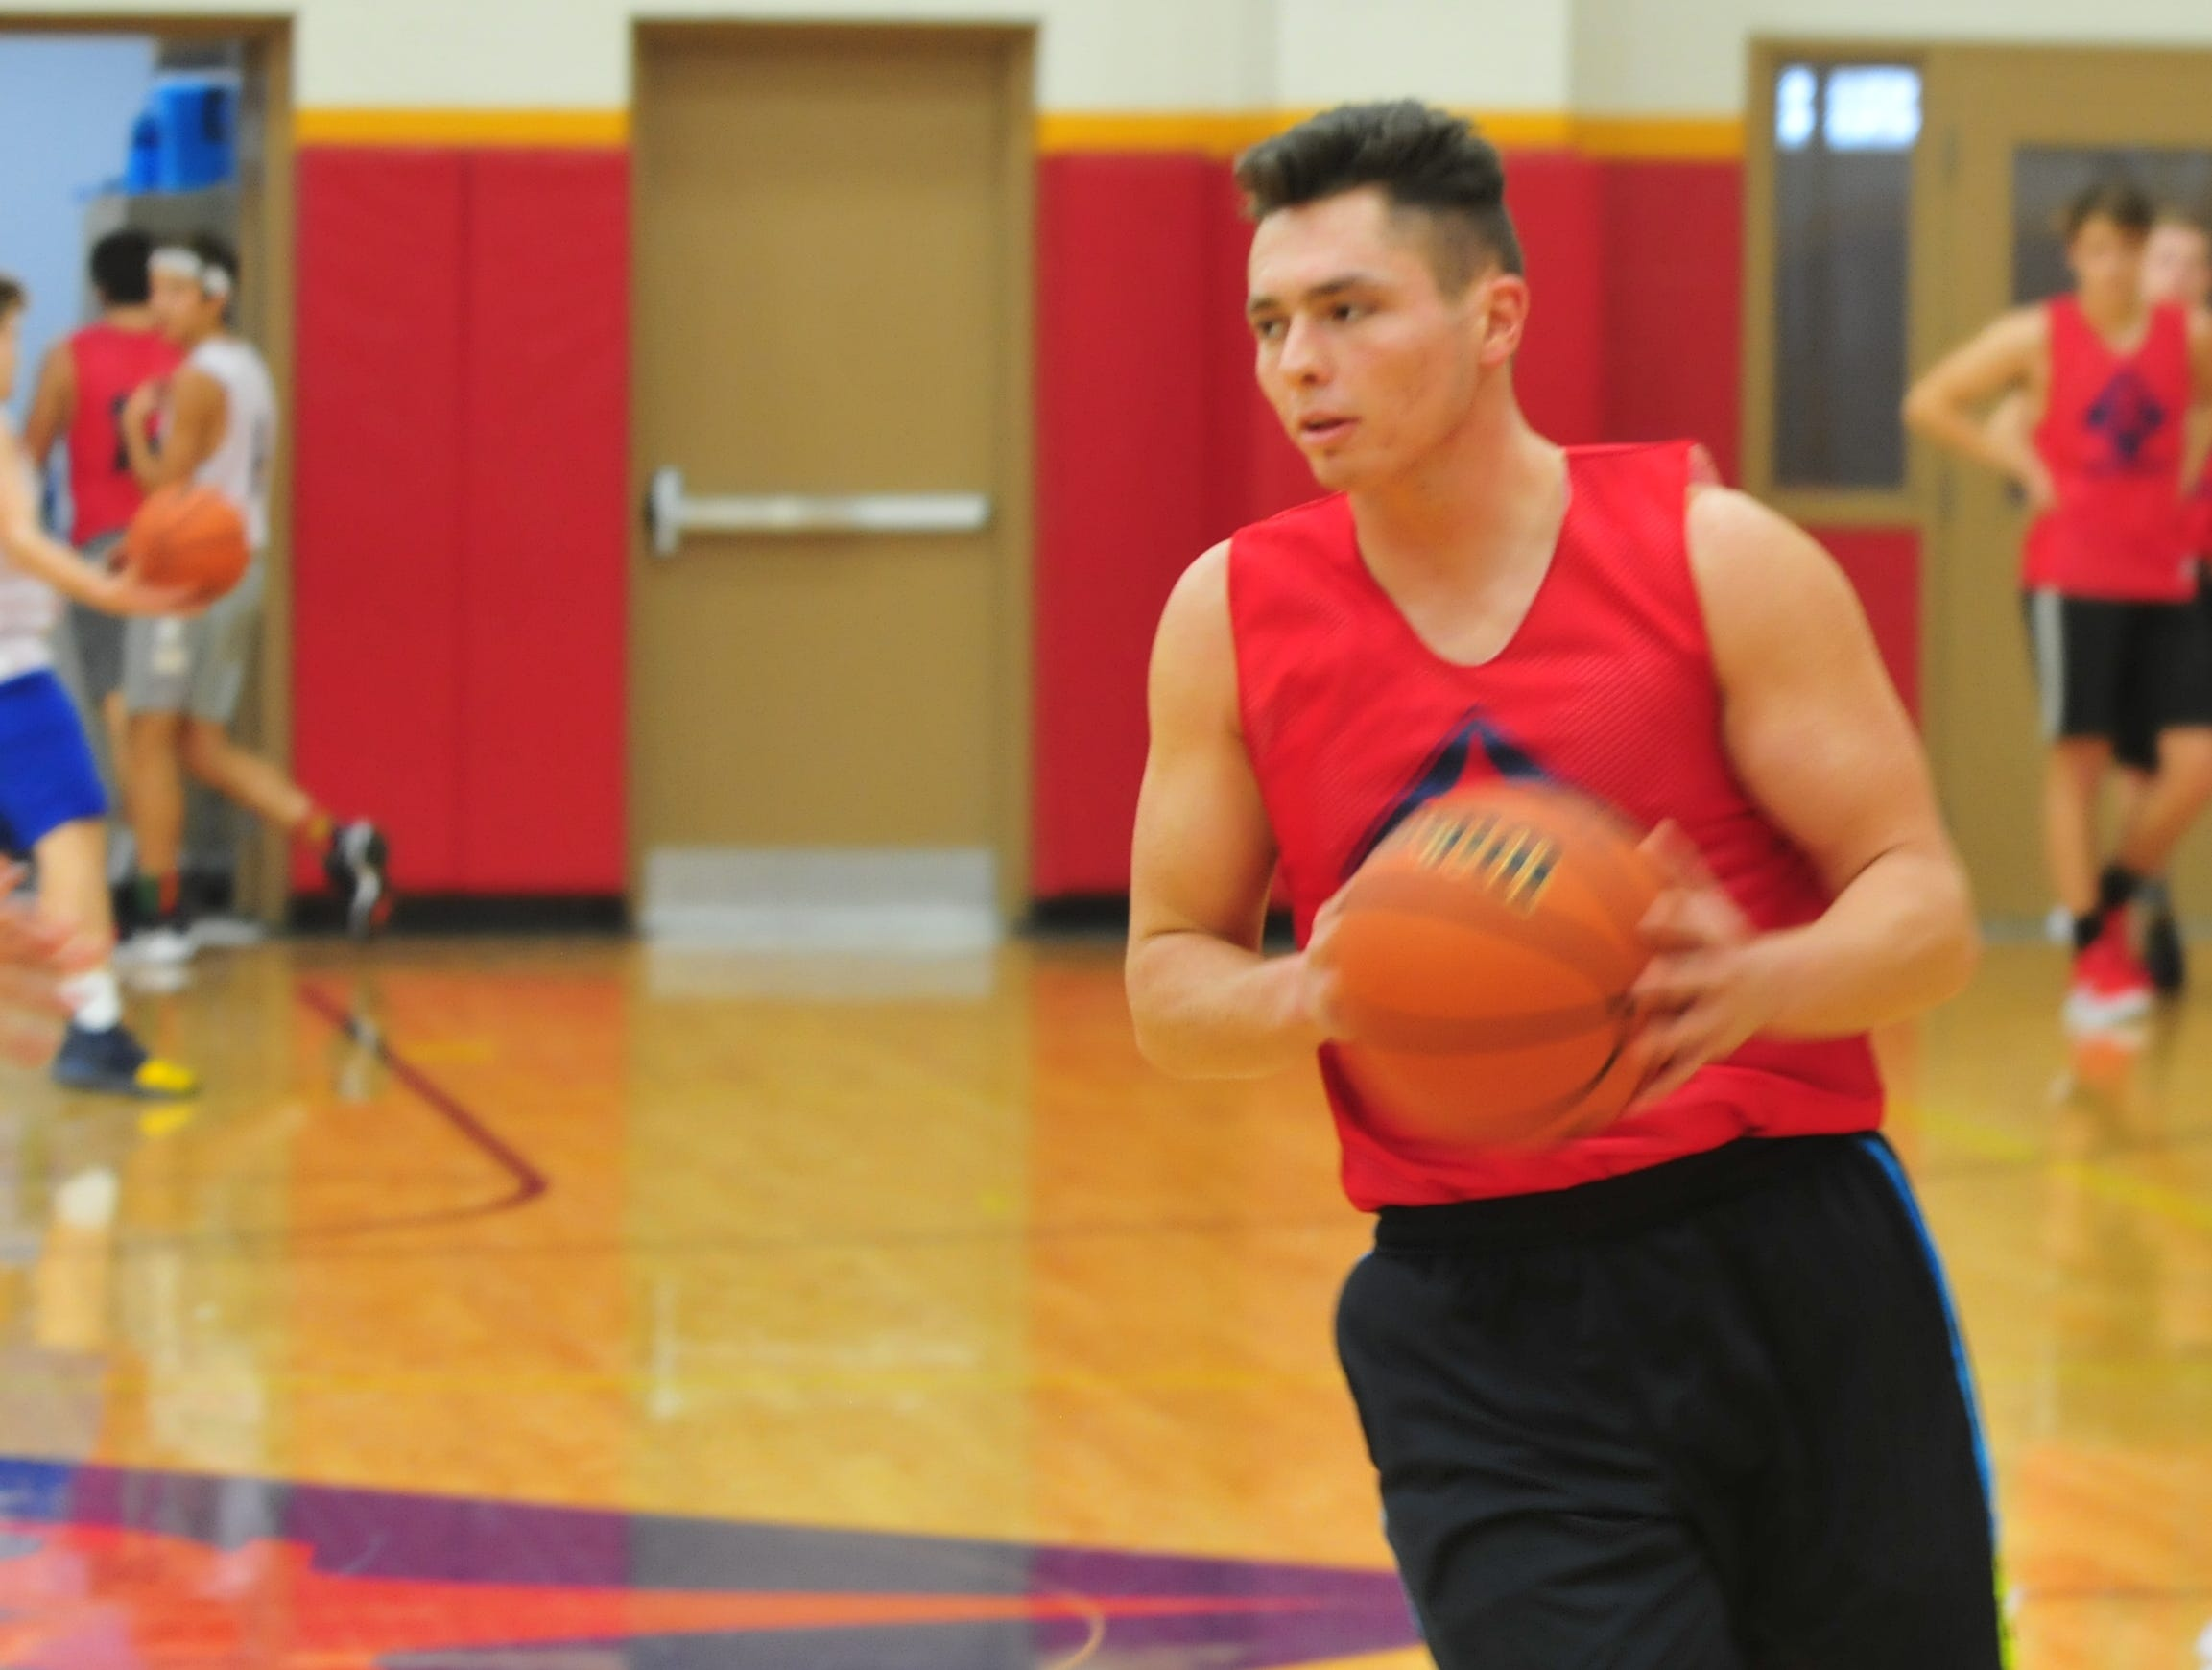 Seton Catholic senior Trent Reichley handles the ball during practice Wednesday, Nov. 28, 2018.